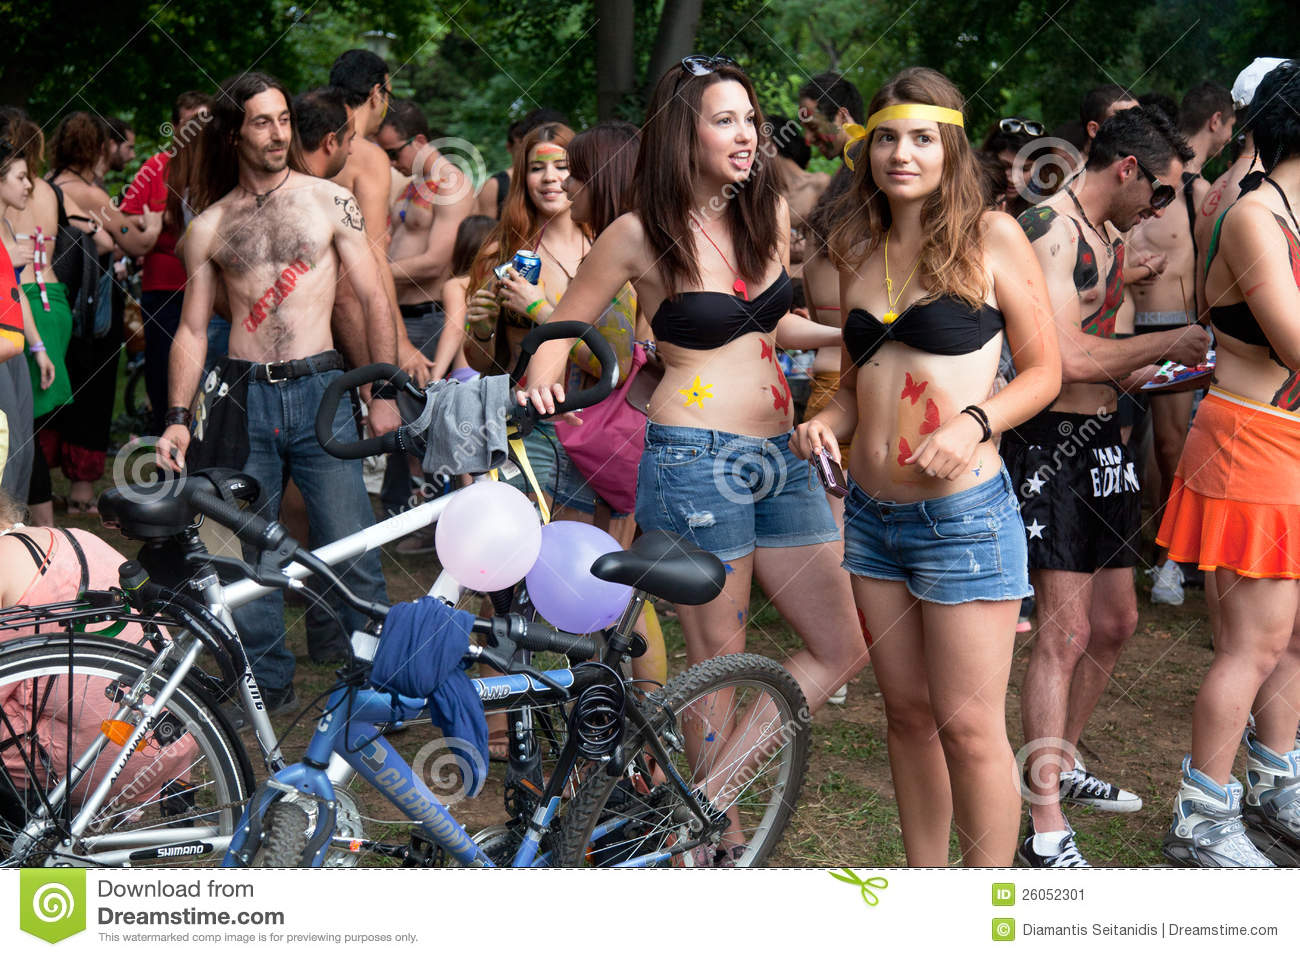 Know pictures of nudist bike protesters thank